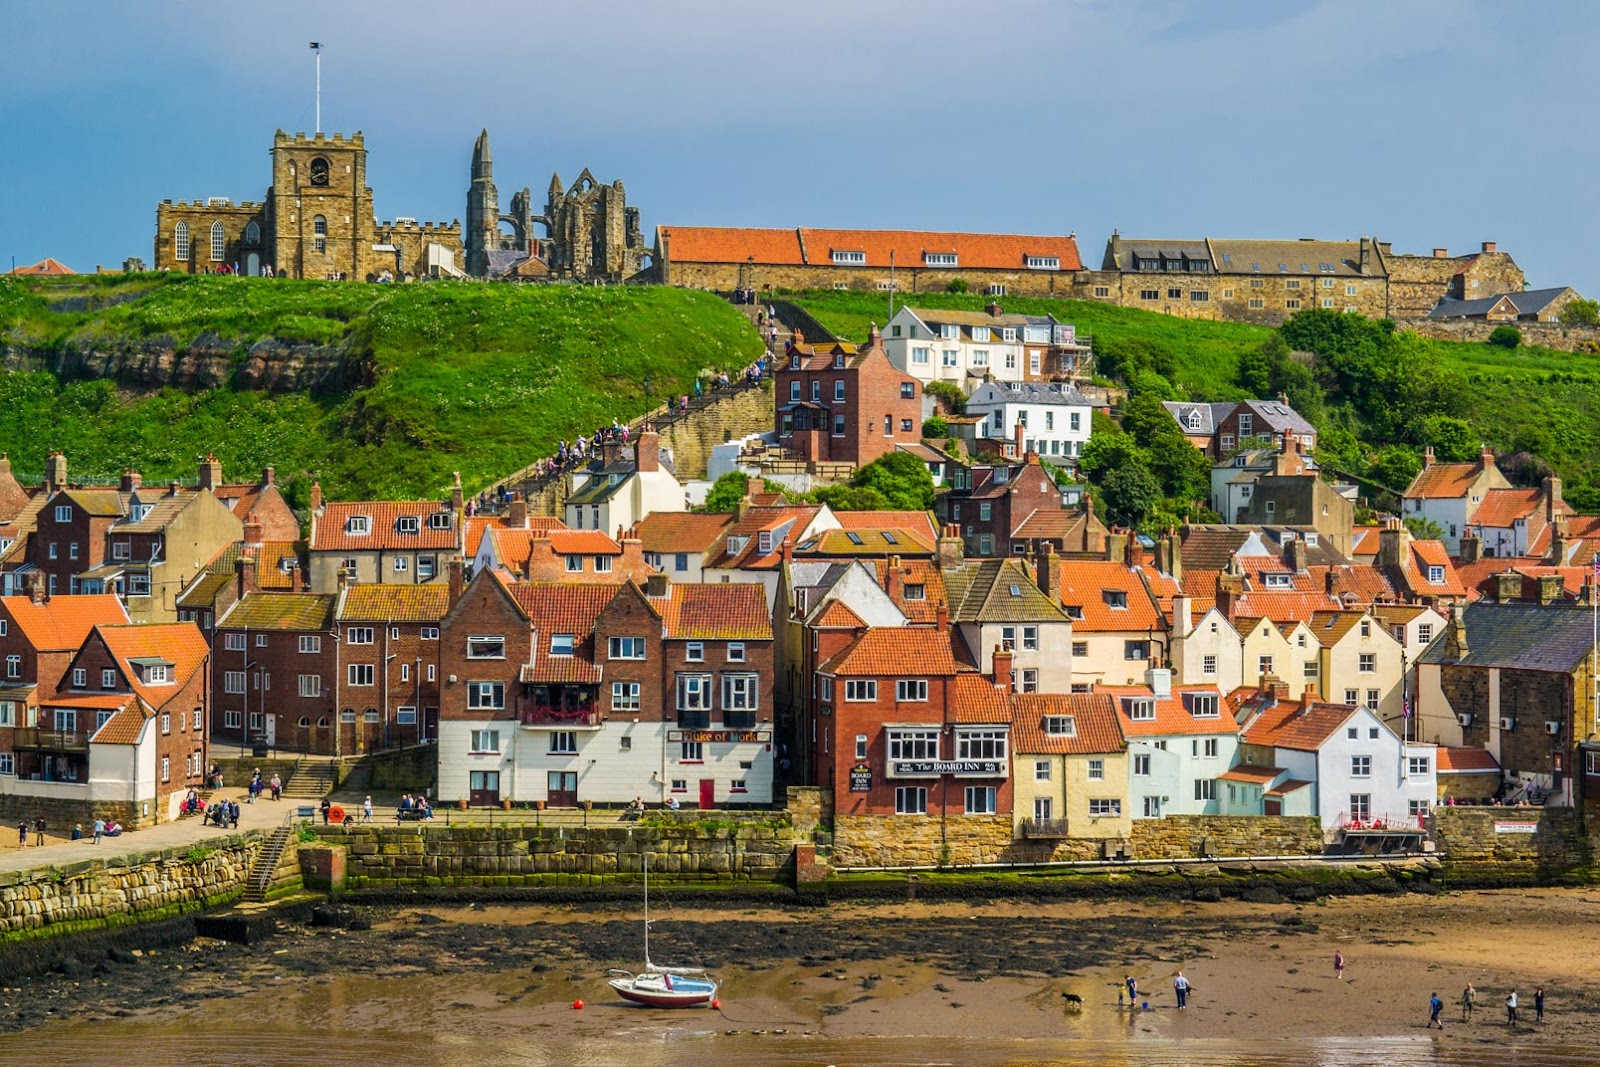 The town of Whitby exemplifies the village-on-the-coast vibe pretty well. The ruins of Whitby Abbey can be seen on the top right. Note how the buildings stack on top of the hill instead of carving straight into it.